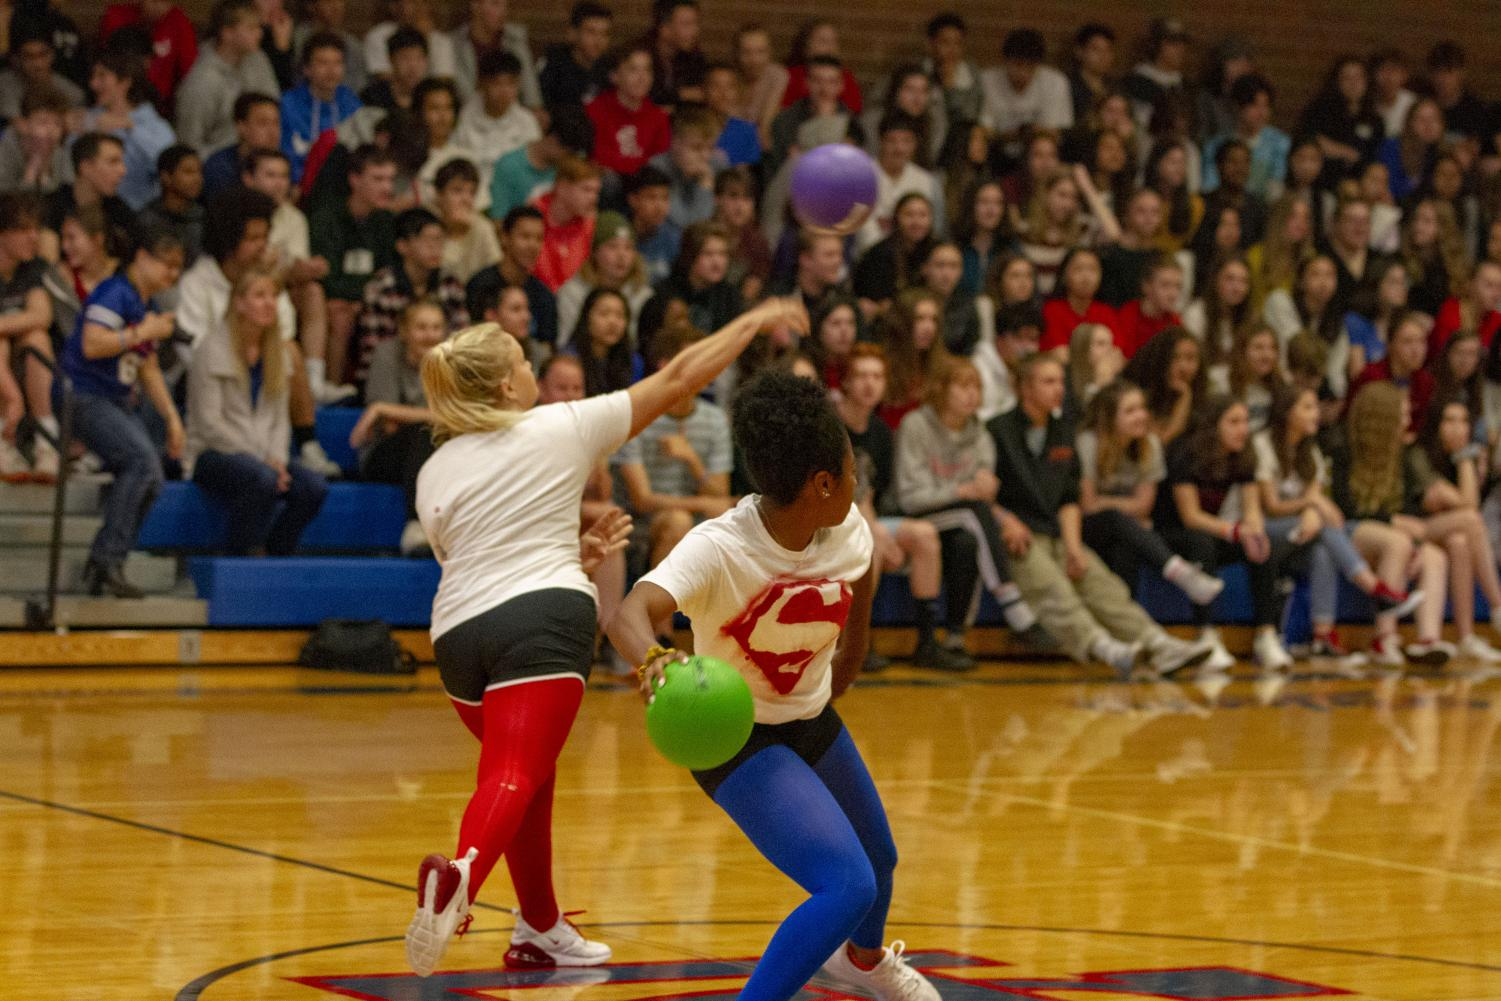 Students+participate+in+the+cream+puff+dodgeball+tournament.